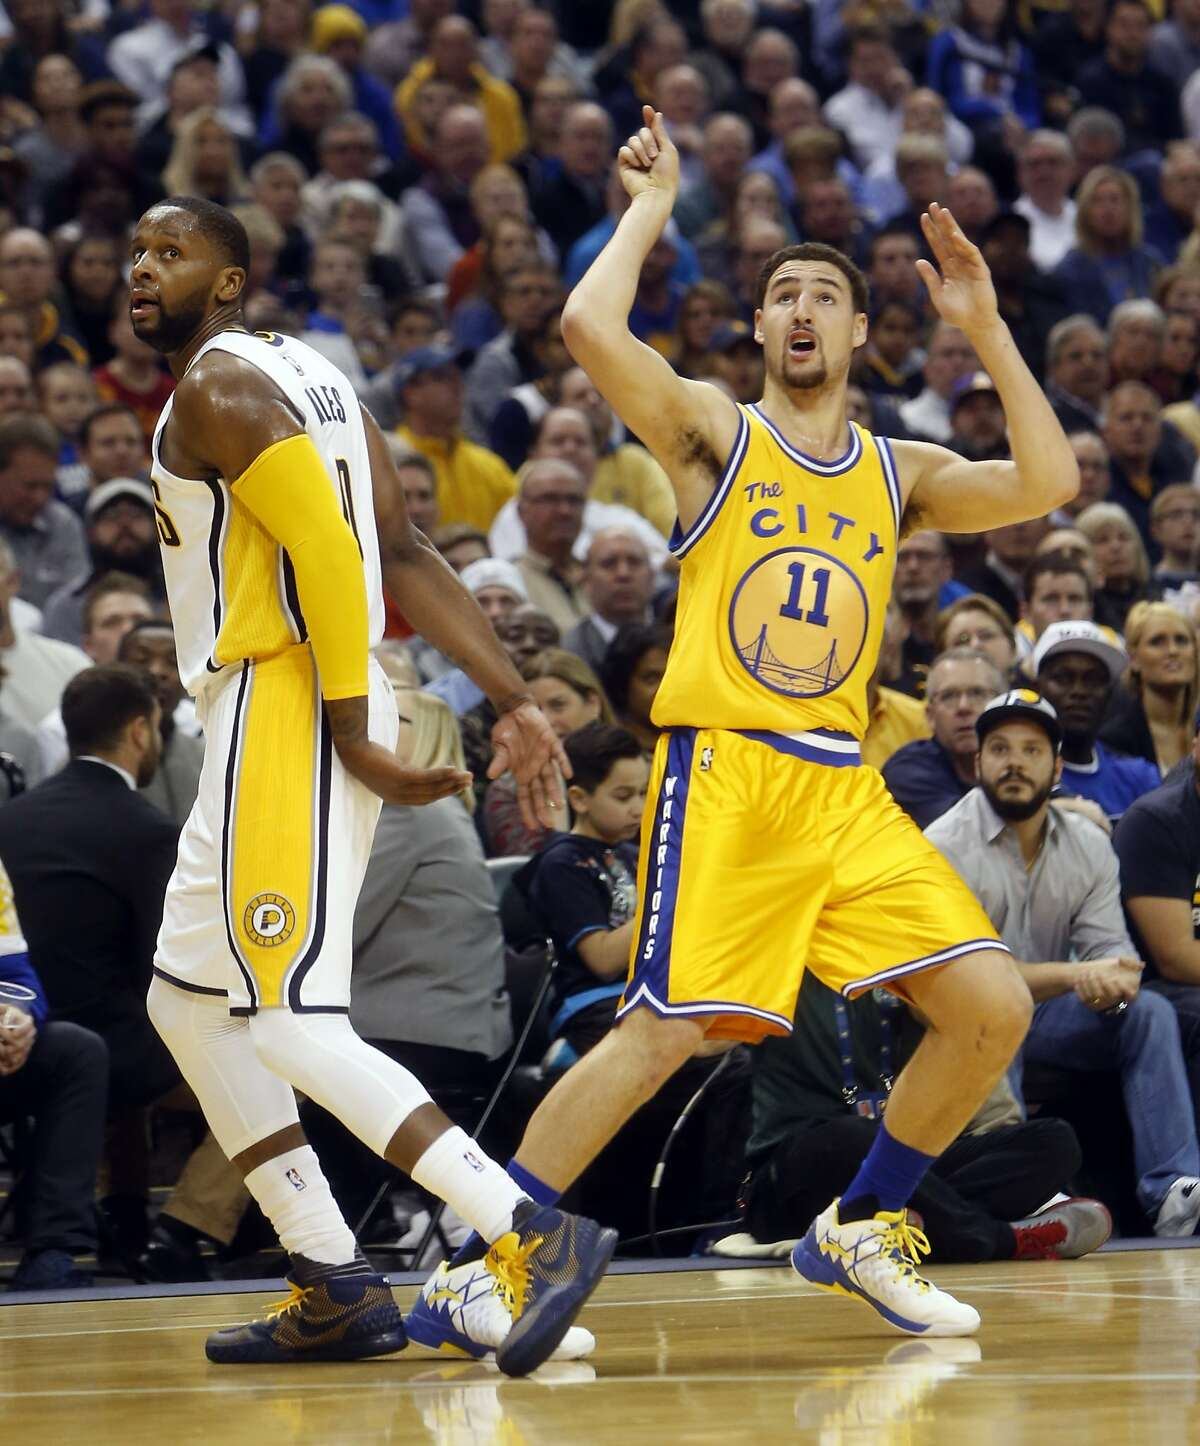 Golden State Warriors' Klay Thompson watches his successful 3-pointer in 2nd quarter against Indiana Pacers' C.J. Miles during NBA game at Bankers Life Fieldhouse in Indianapolis, Indiana on Tuesday, December 8, 2015.